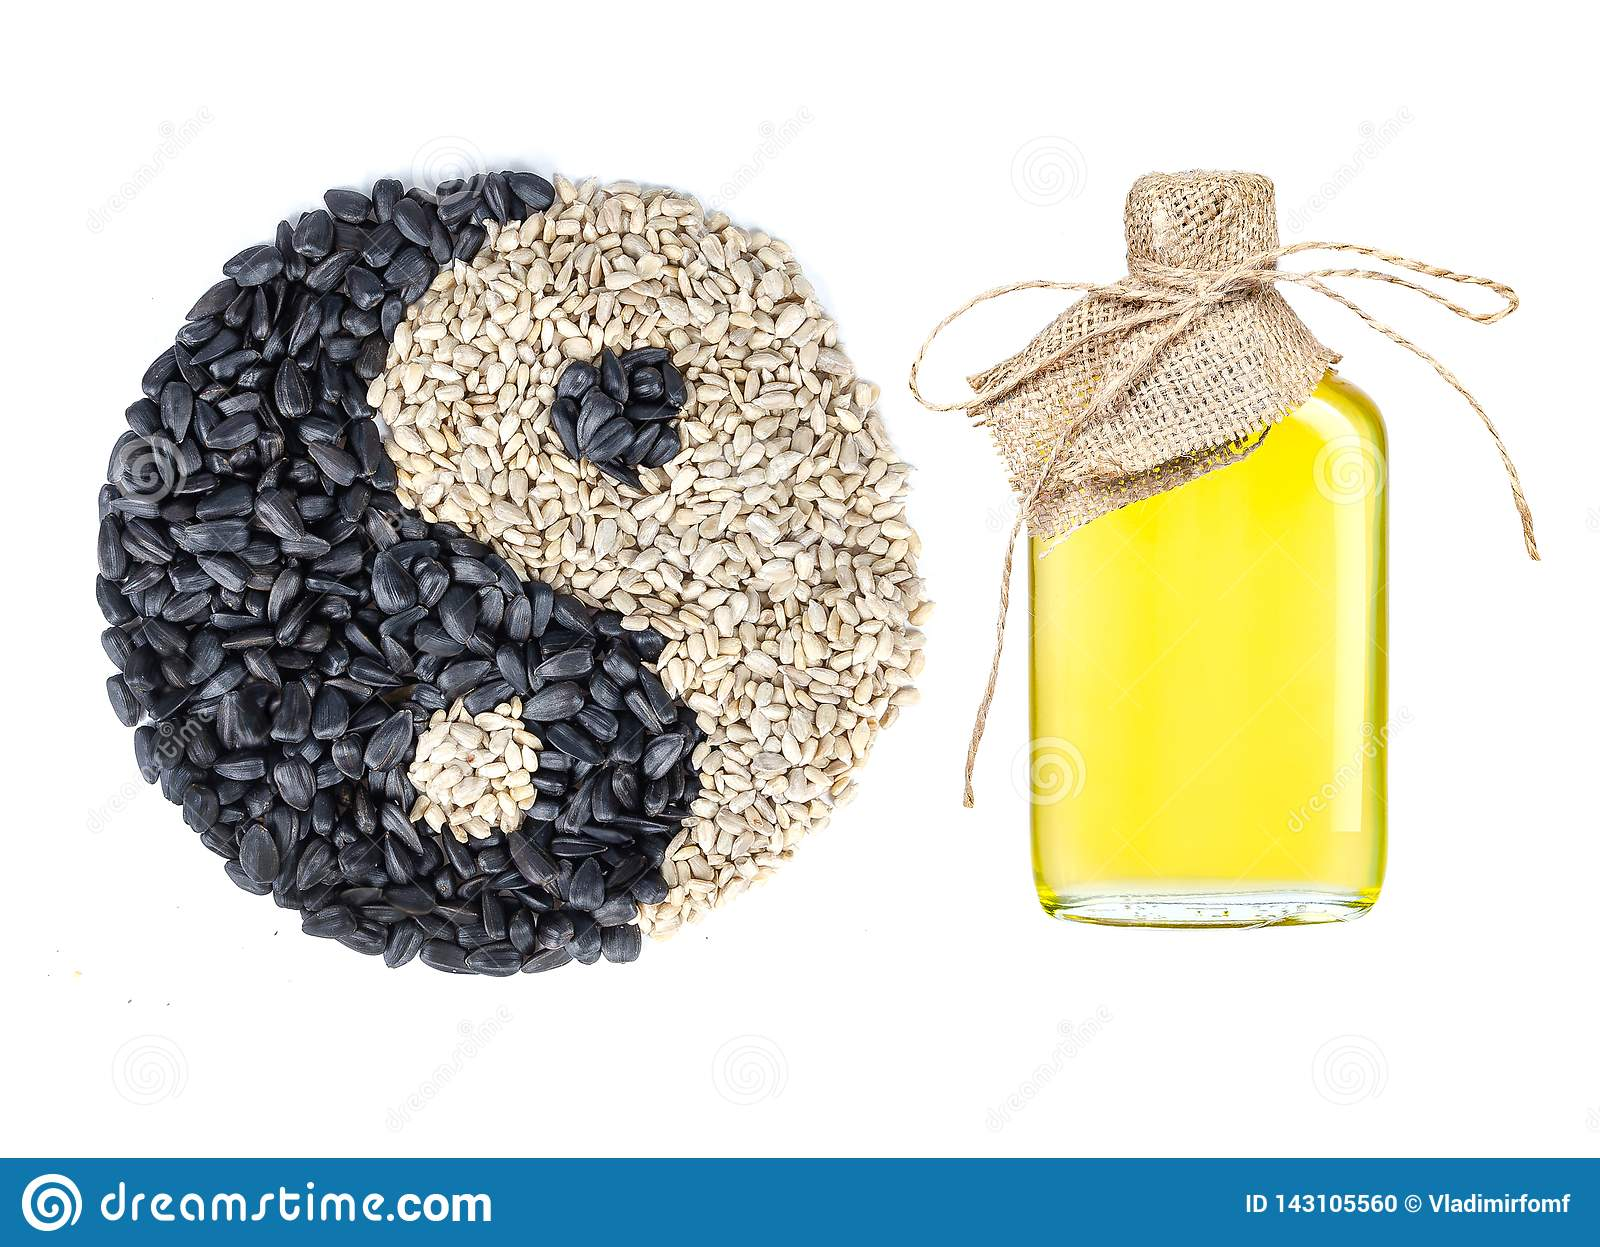 Sunflower oil in a crafted glass bottle and an yin and yang symbol made of seeds on white backgound